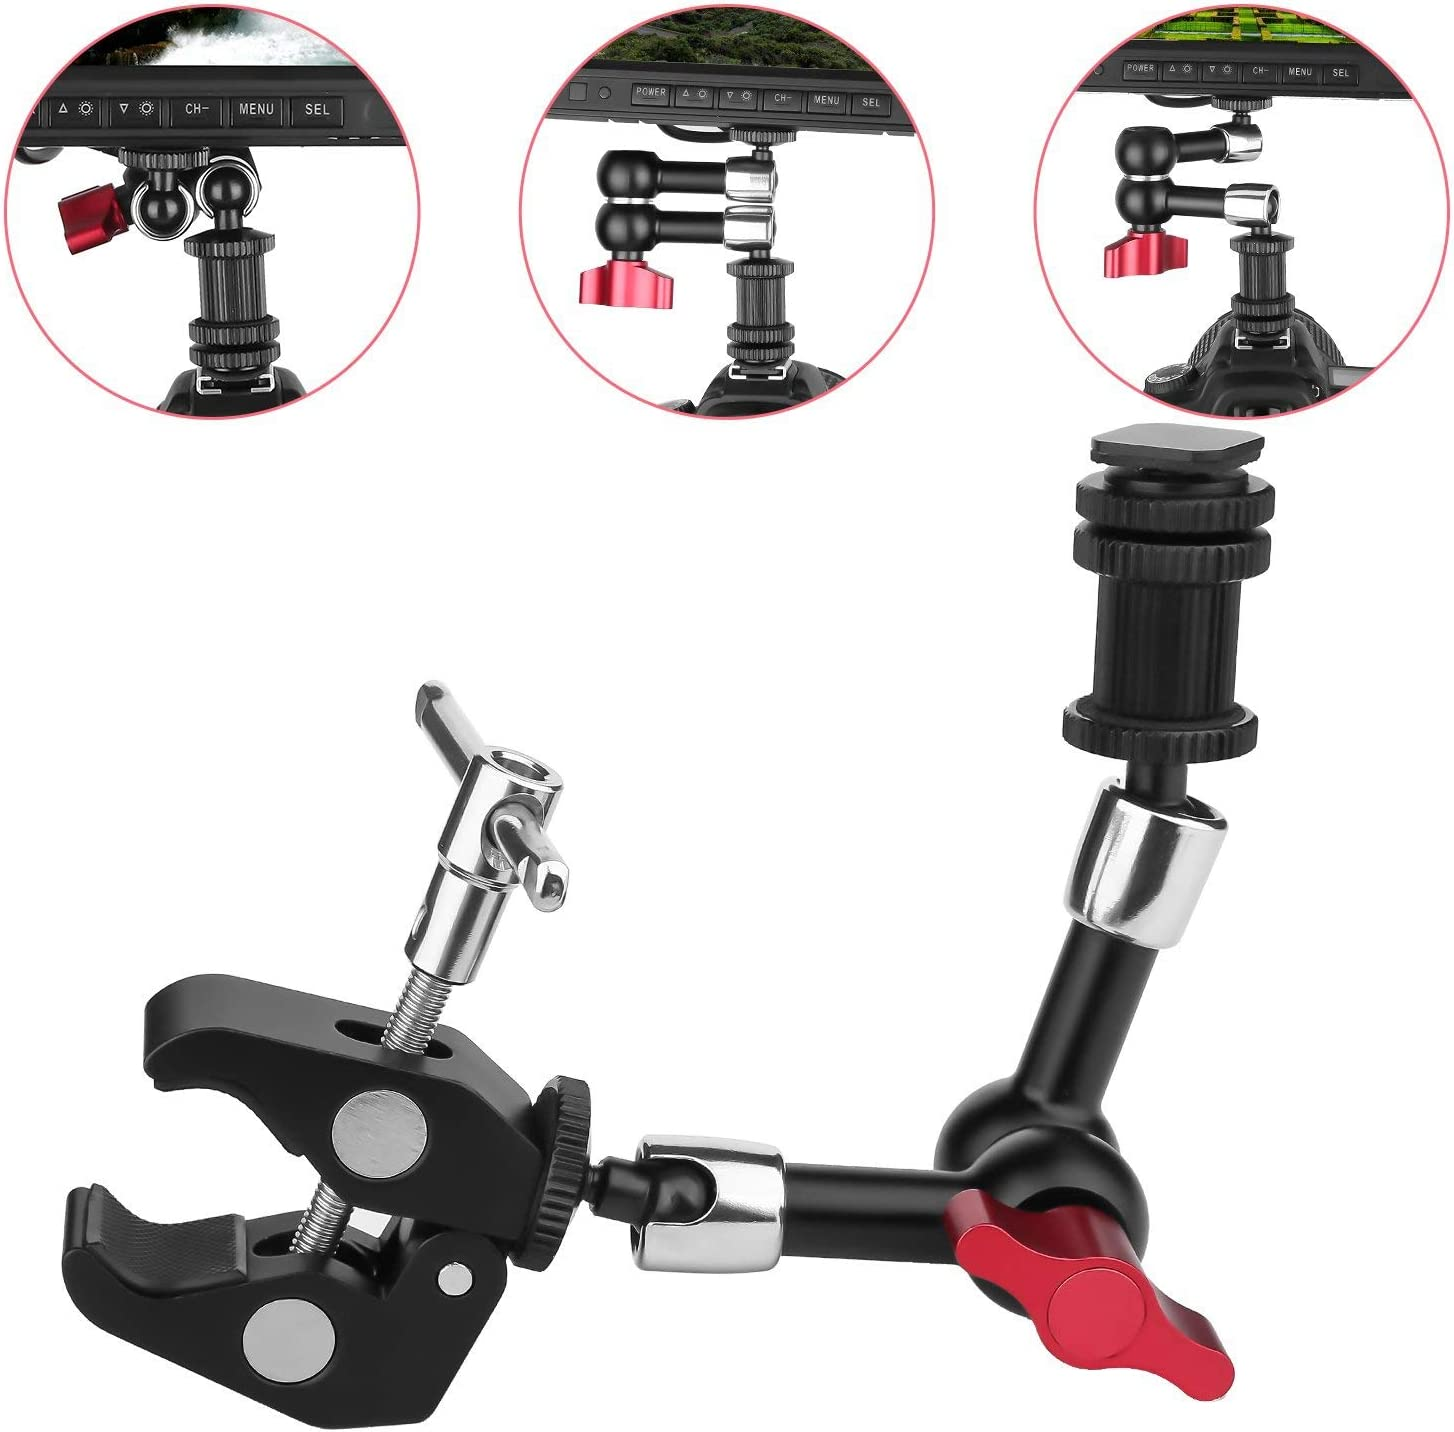 LCD Monitor Flash Light Semoic 7Inch Adjustable Articulating Friction Magic Arm /& Large Super Clamp Compatible with DSLR Camera Rig Led Lights